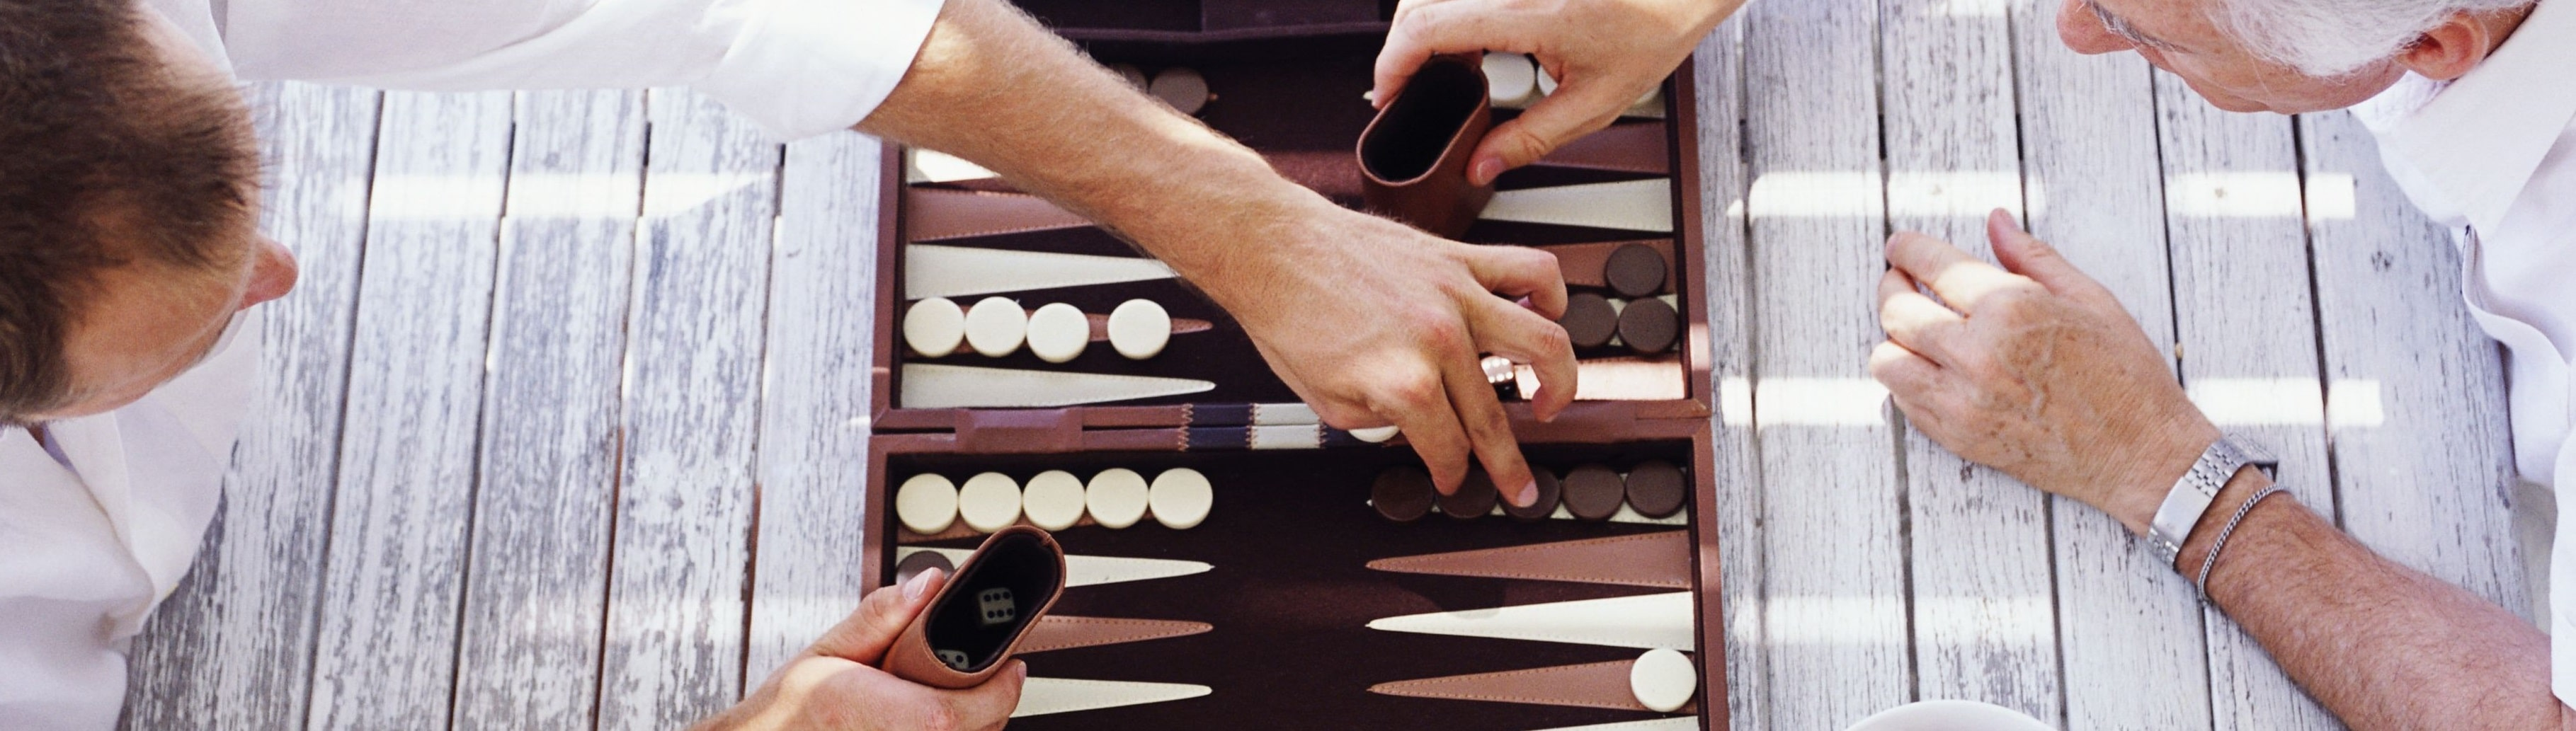 Best Backgammon Sets Reviewed in Detail